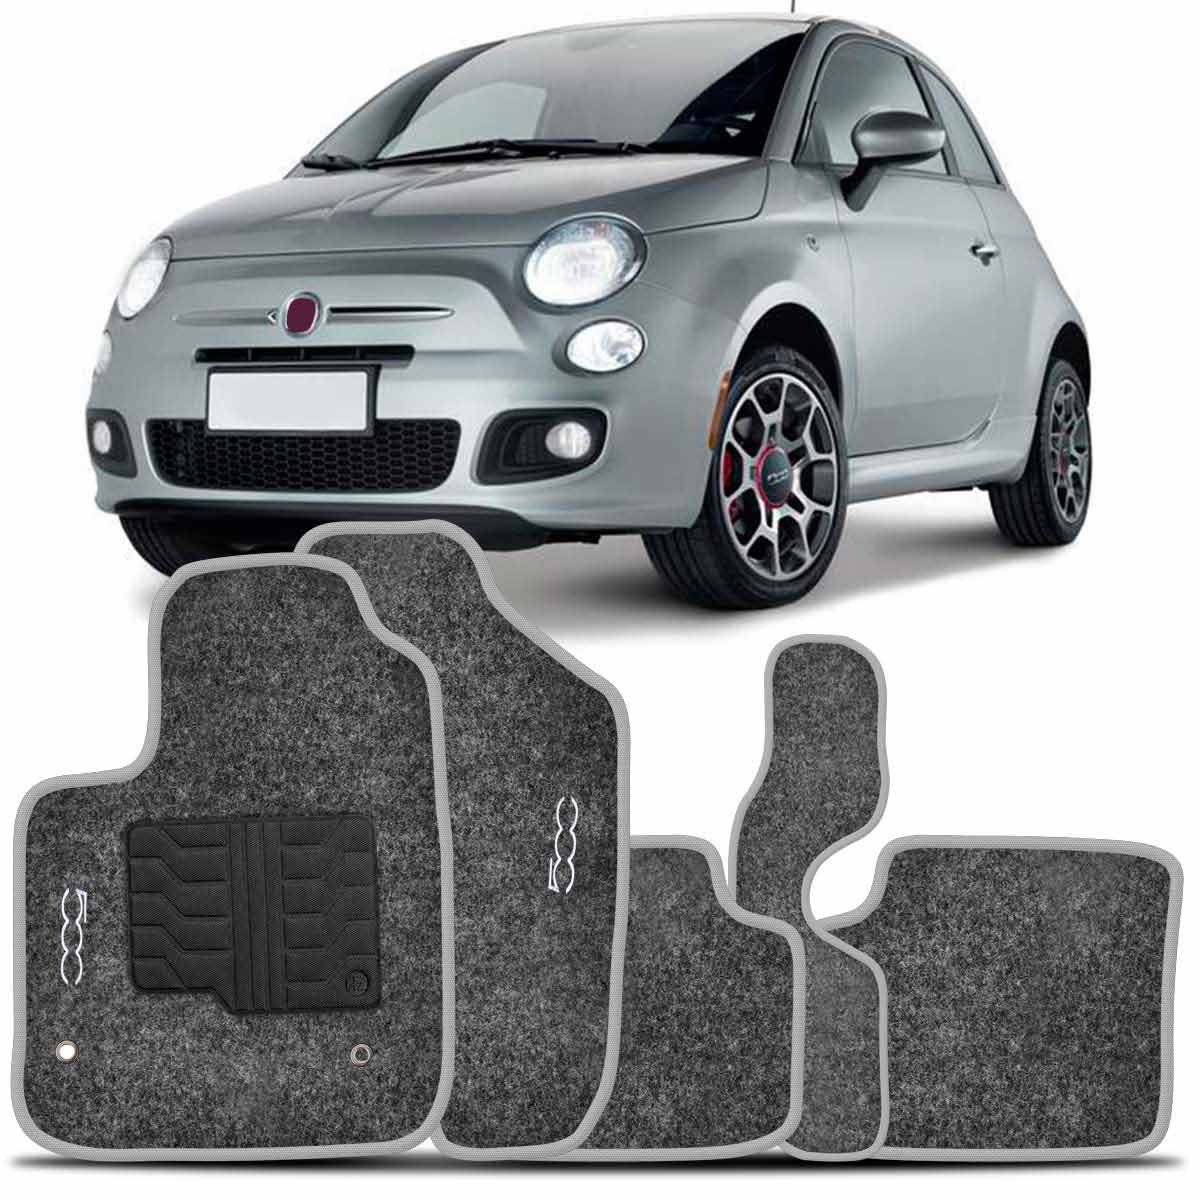 Tapete Carpete Fiat 500 2010 2011 2012 2013 2014 2015 Grafite